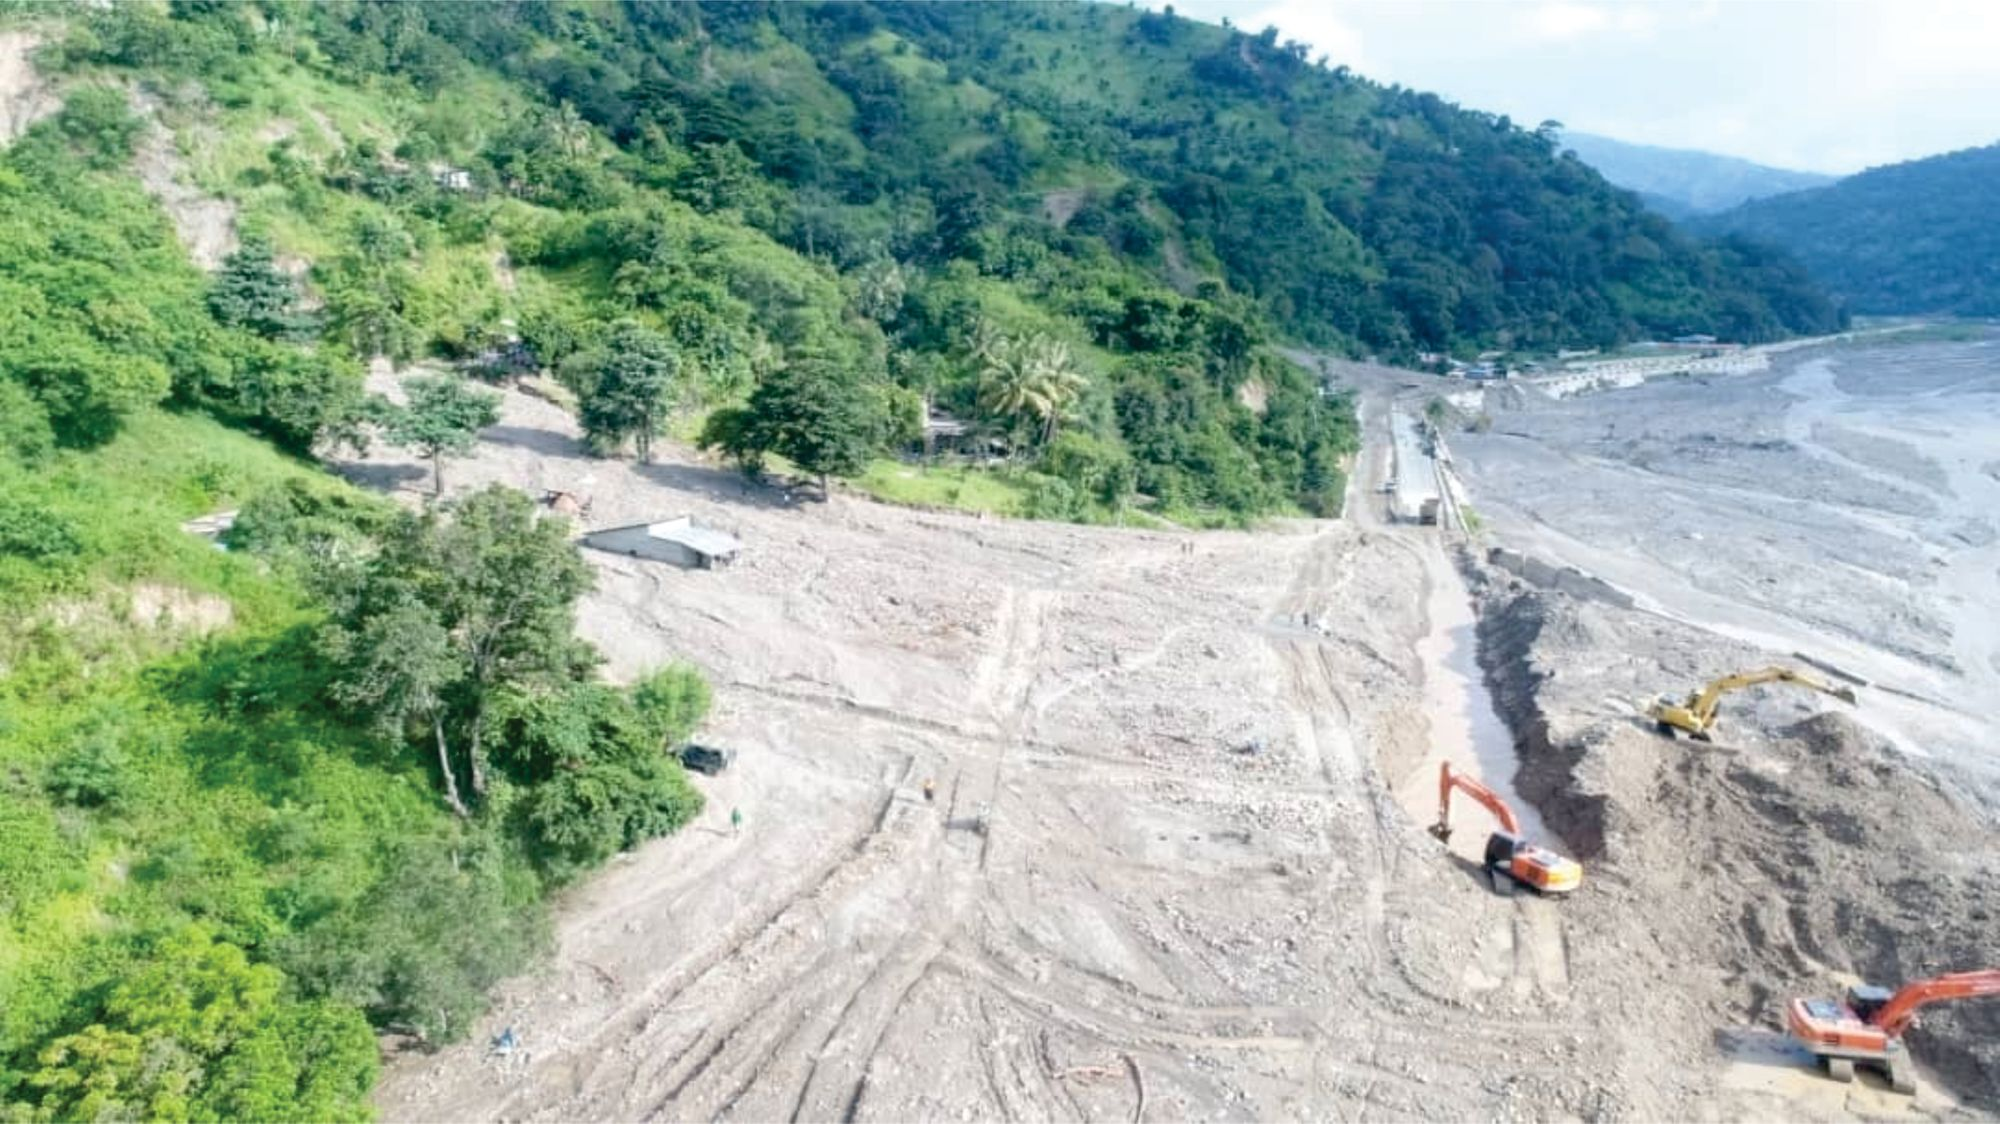 Flooding And Landsliding In Timor-Leste: Linked Hazards In A Young Mountain Belt